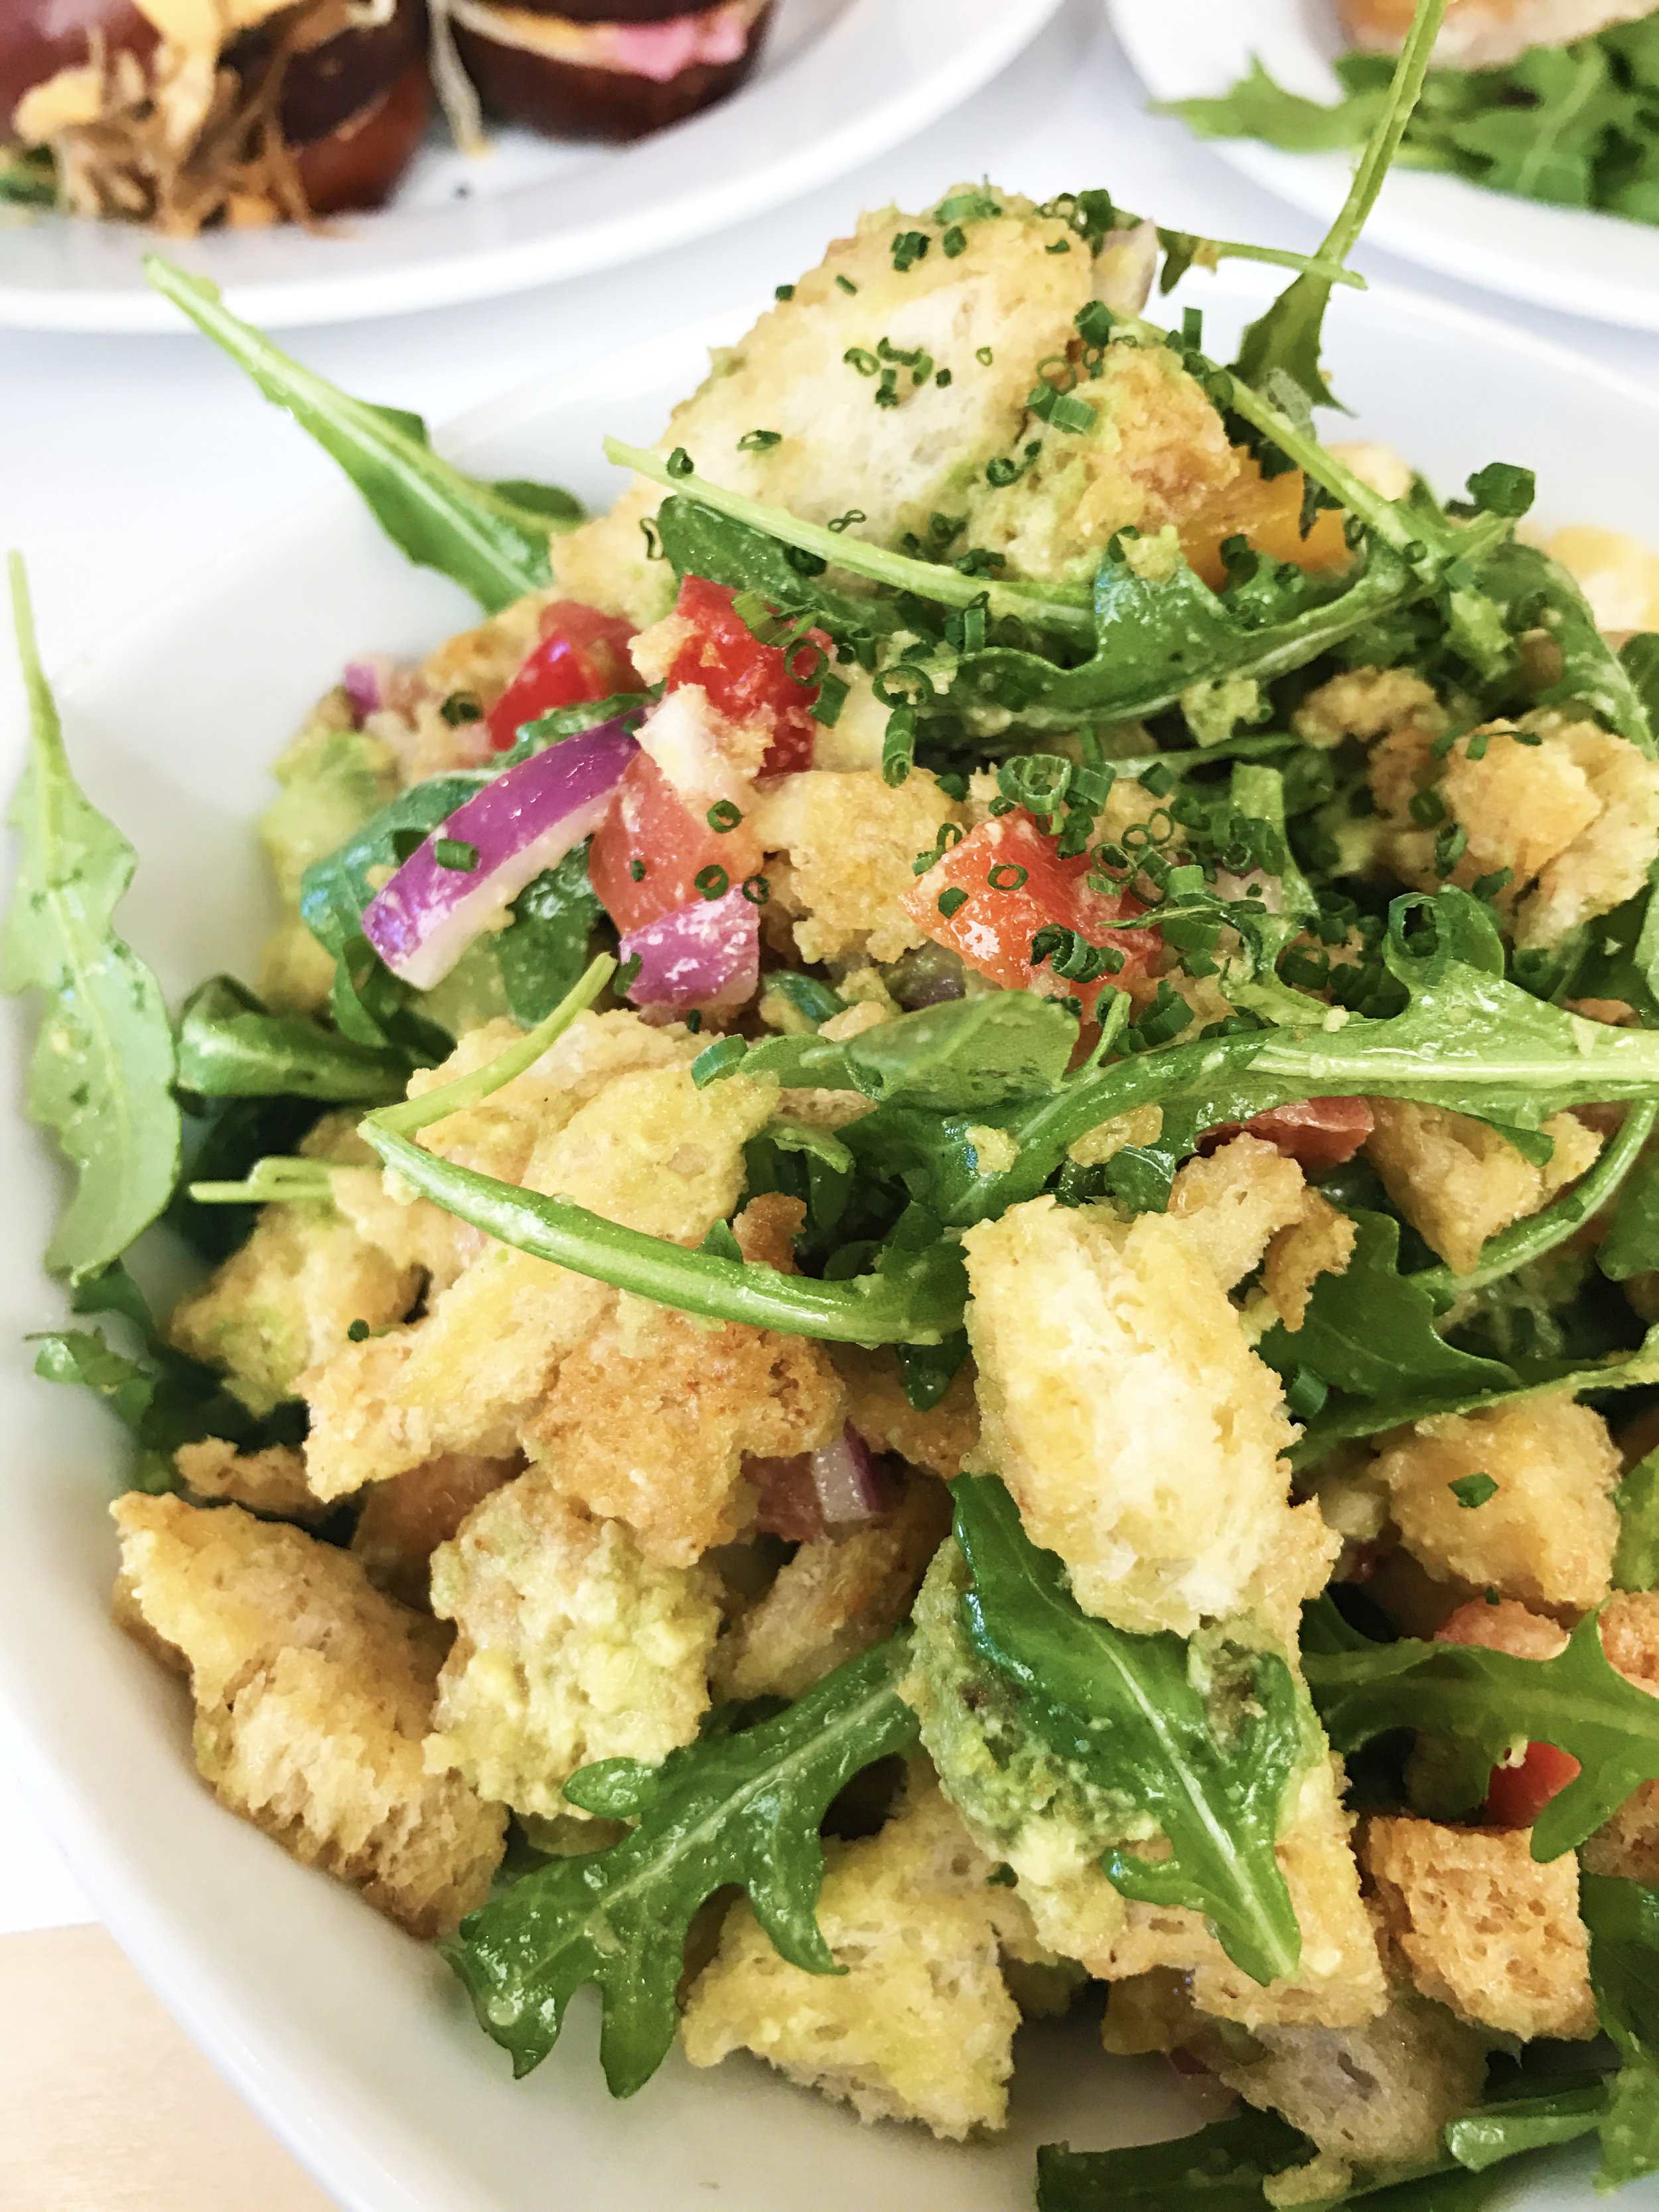 Panzanella salad with toasted bread, avocado, and market vegetables